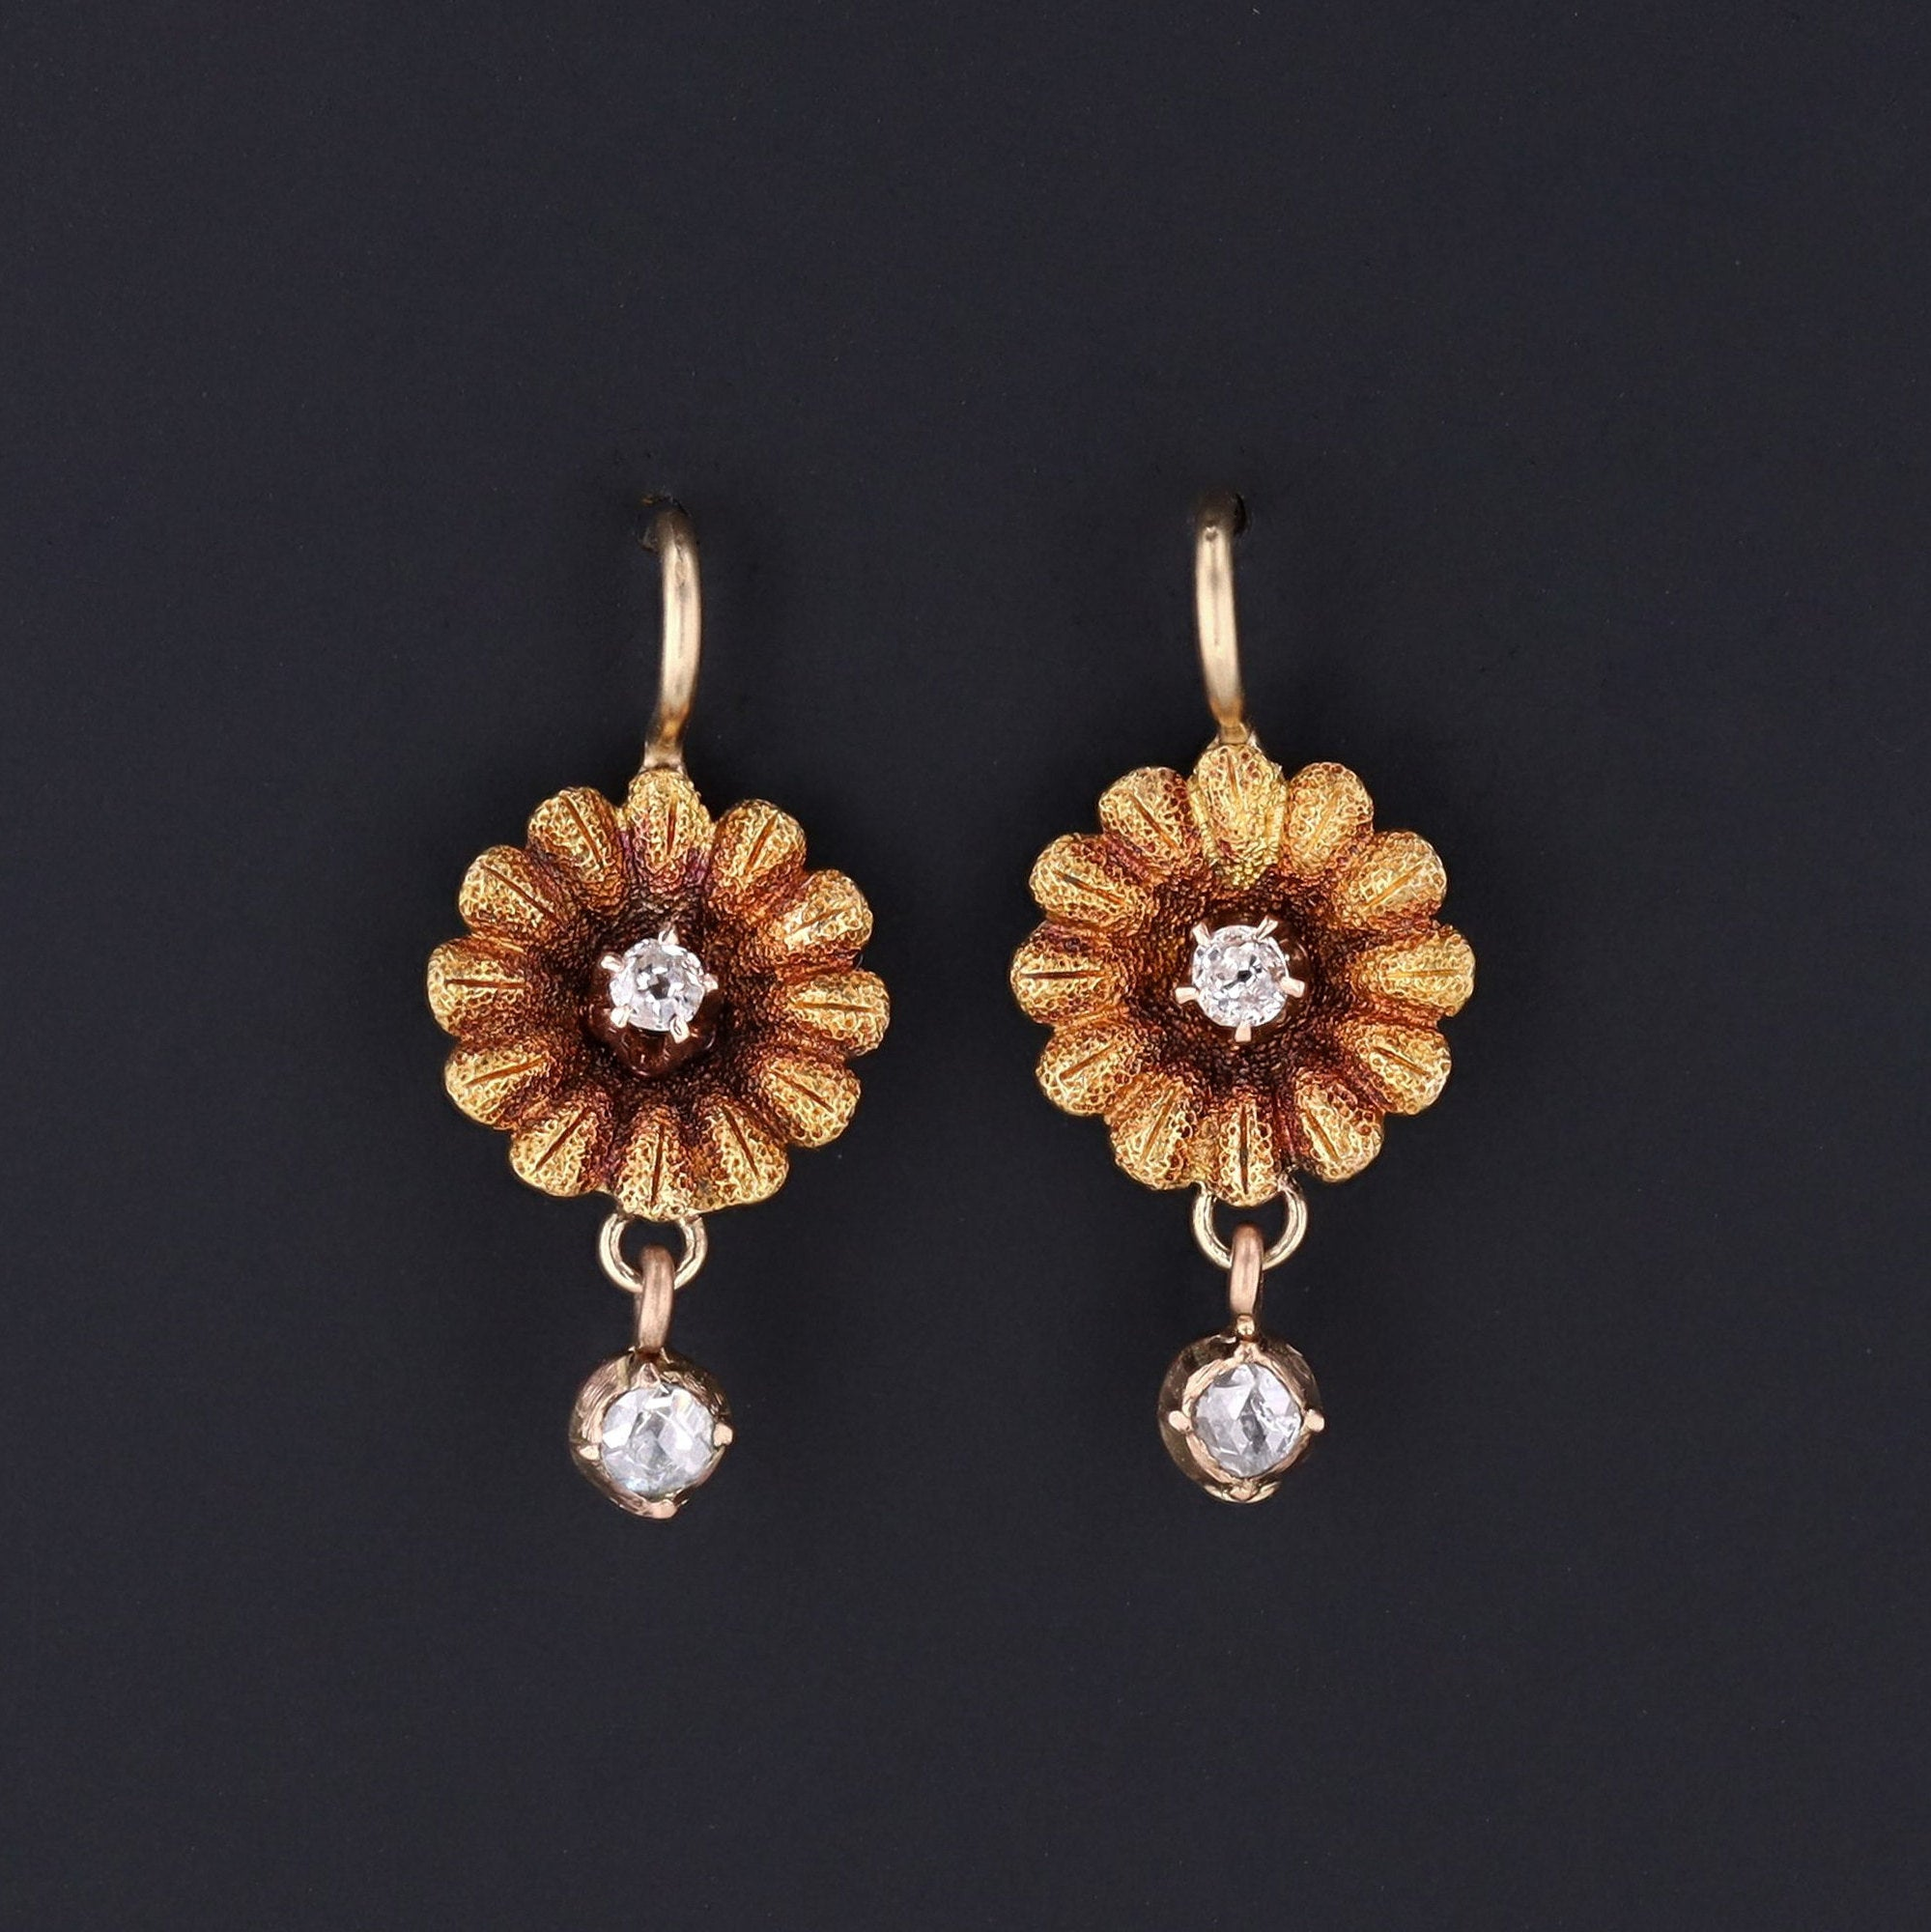 Daisy Earrings | Diamond Daisy Earrings | 14k Gold & Diamond Flower Earrings | Antique Pin Conversion Earrings